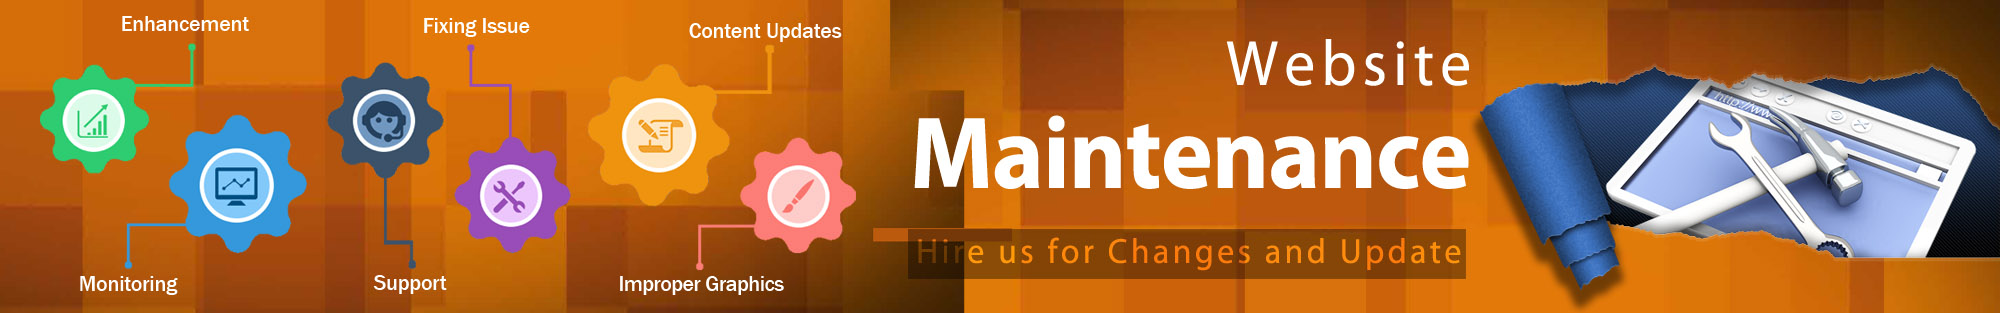 website maintenance services in Mumbai, India